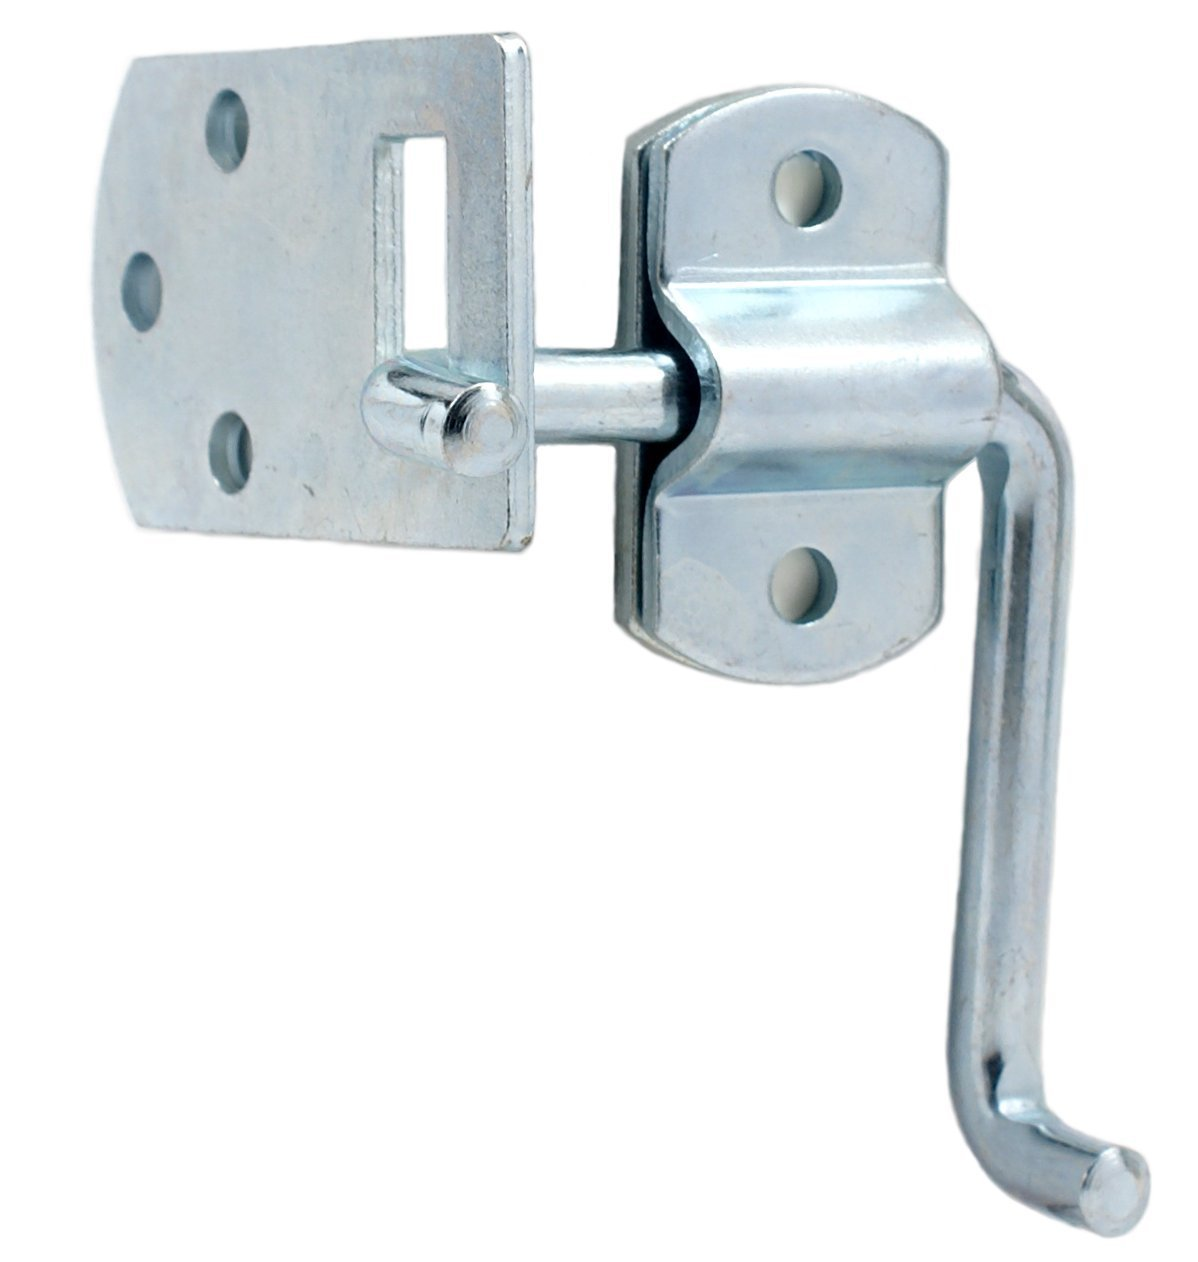 Boxer Tools Corner Gate Latch Sets for Stake Body Gates, Clear Zinc, 4 Piece